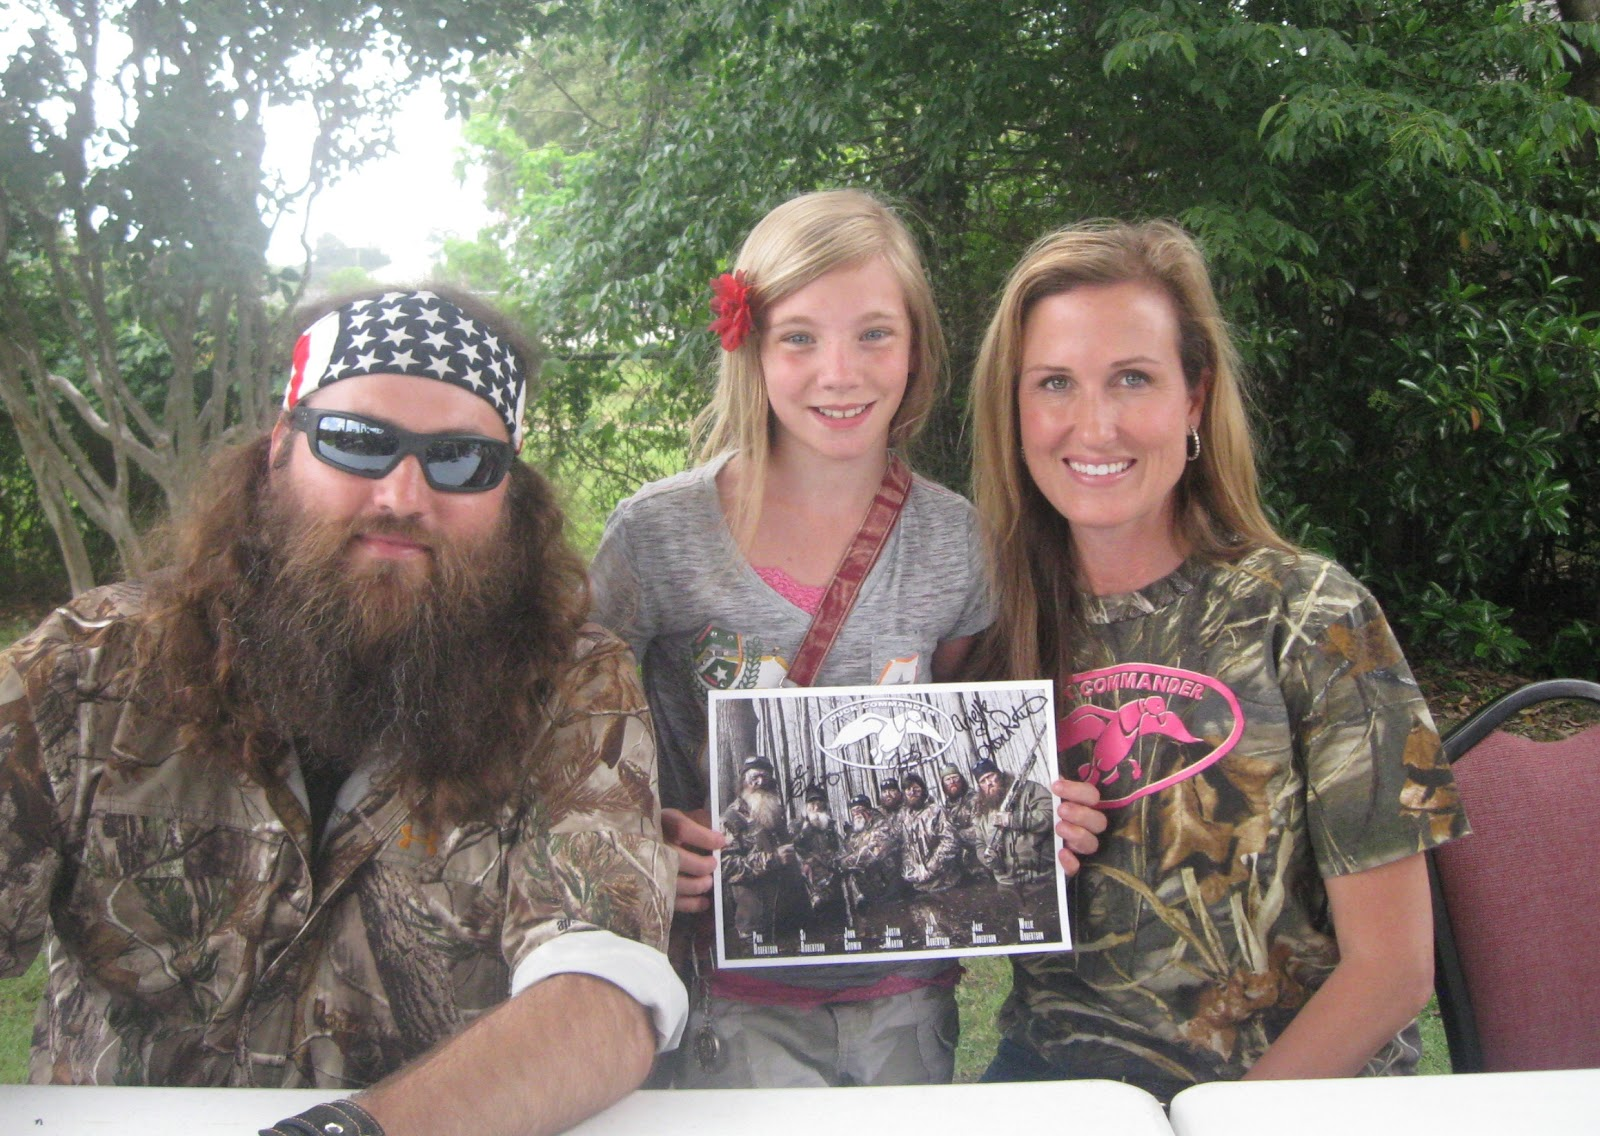 My daughter with Willie and Korie Robertson from Duck Dynasty.